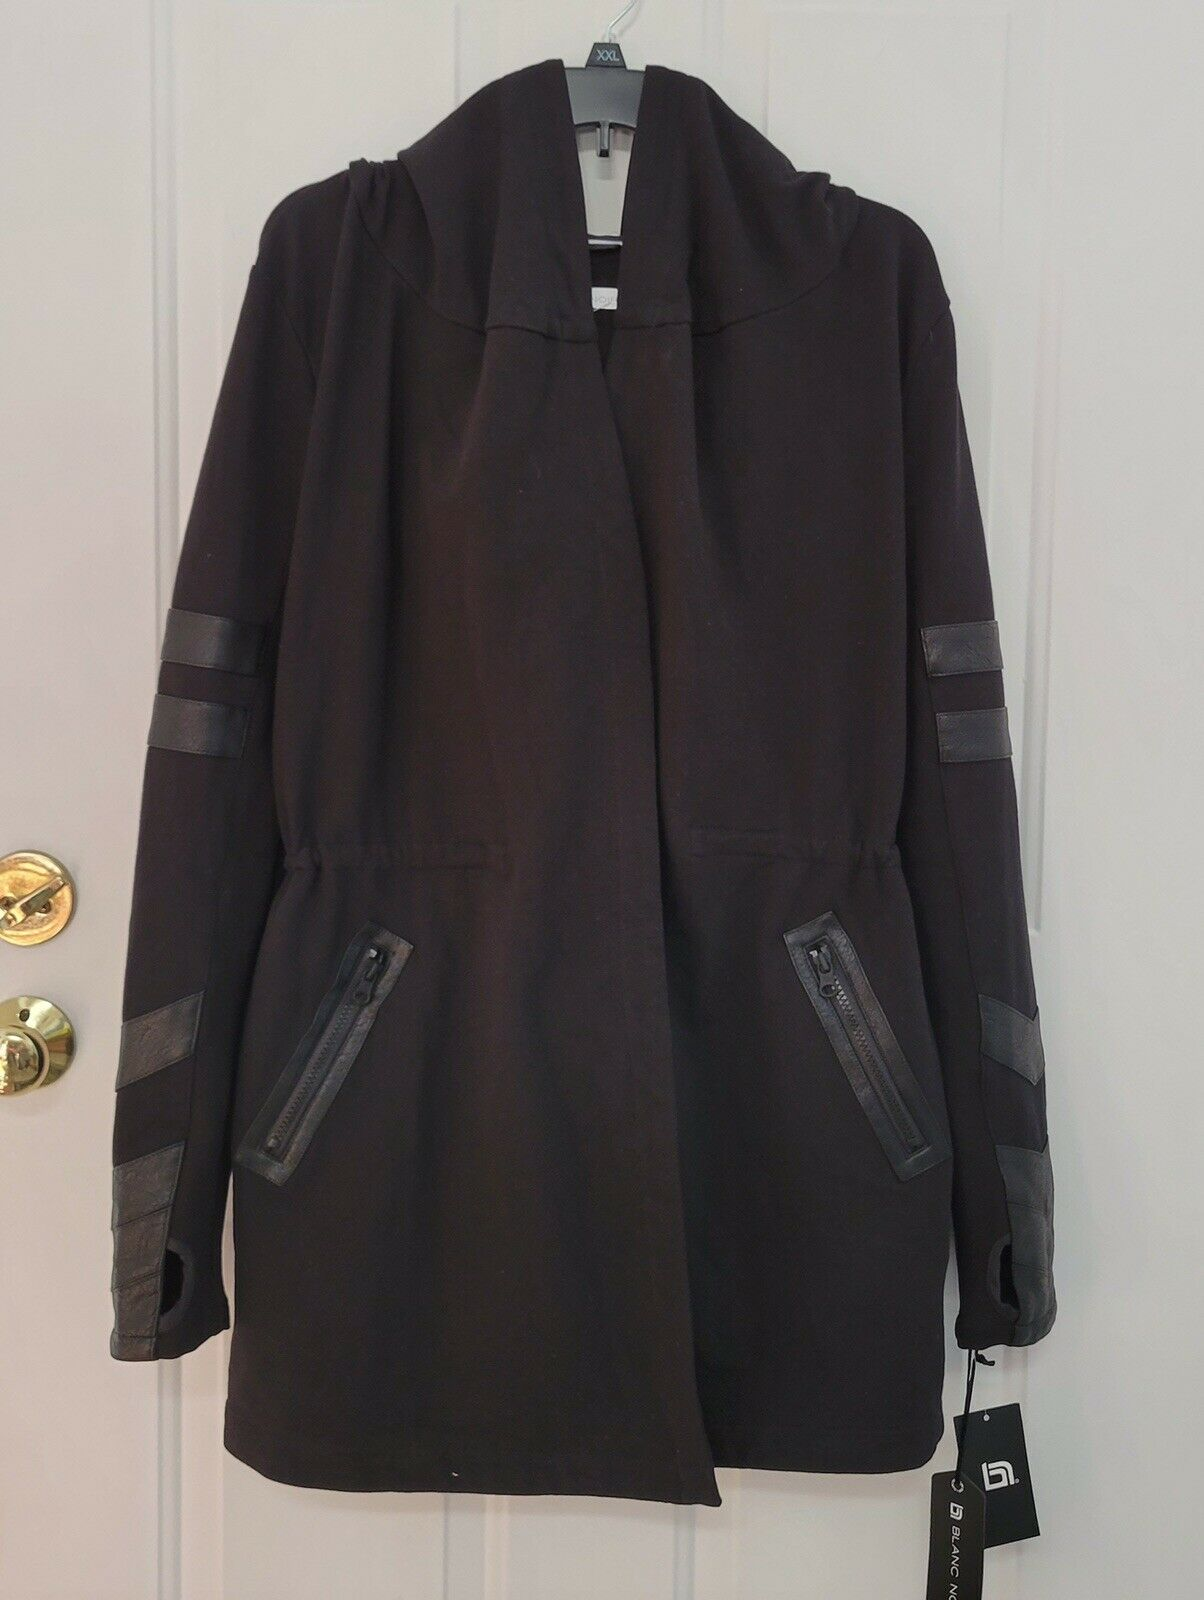 Blanc Noir Women's Black Hooded Jacket Long Sleeves Faux Leather Trim Size S NWT